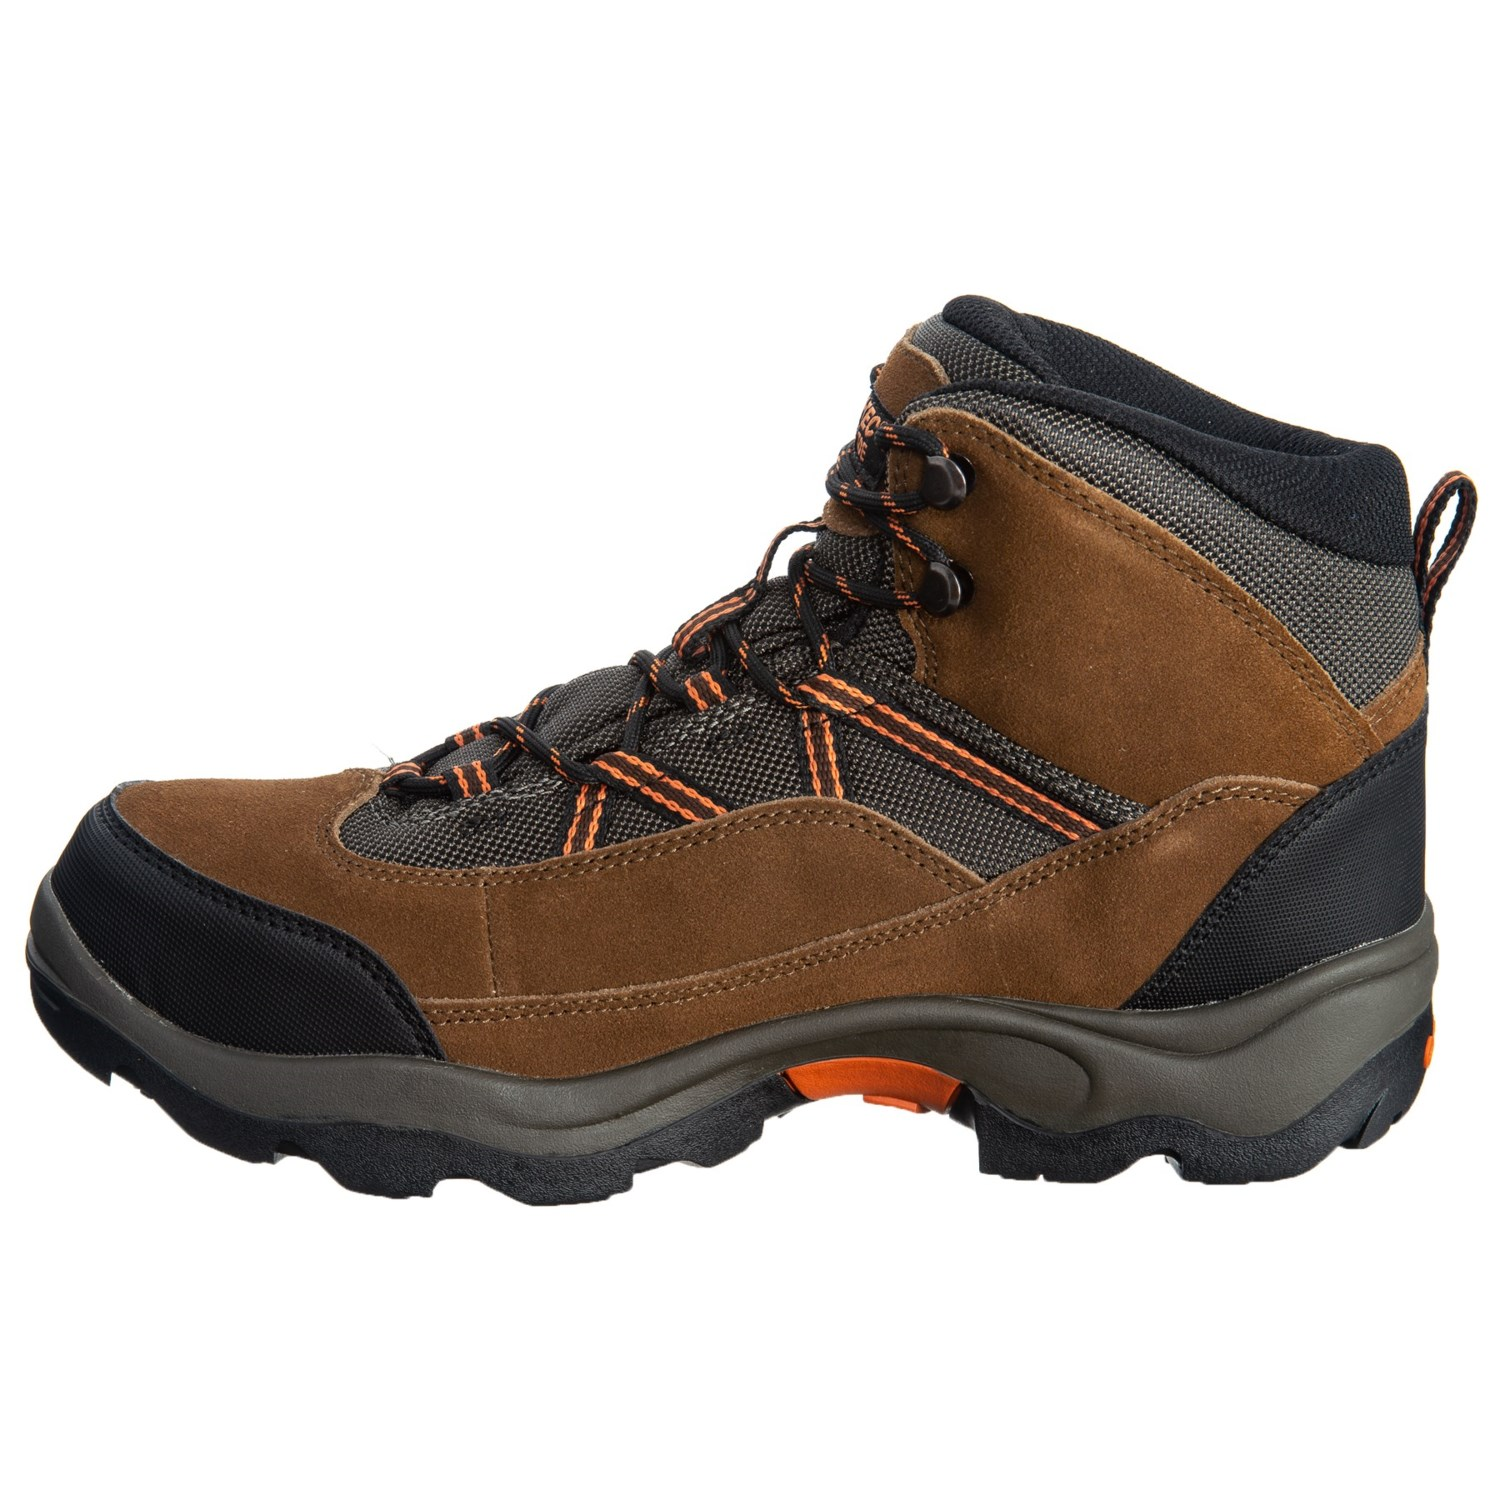 bf926e7aea8 Hi-Tec Bandera Pro Work Boots - Waterproof, Steel Safety Toe (For Men)